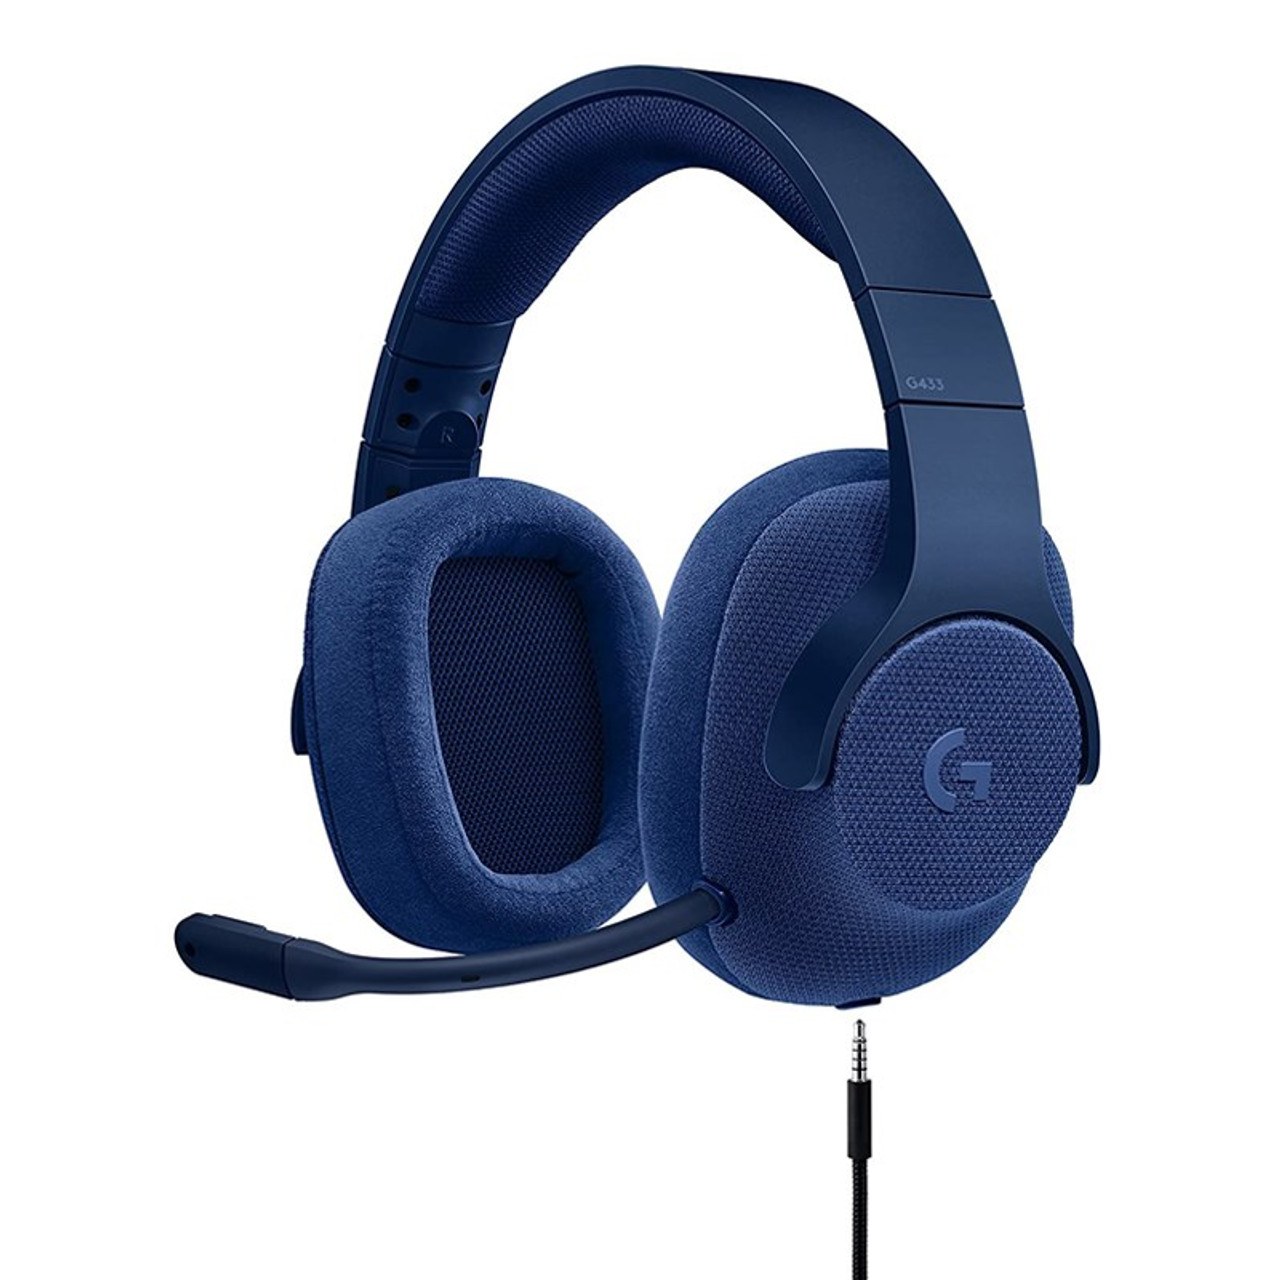 Image for Logitech G433 7.1 Surround Wired Gaming Headset - Blue CX Computer Superstore